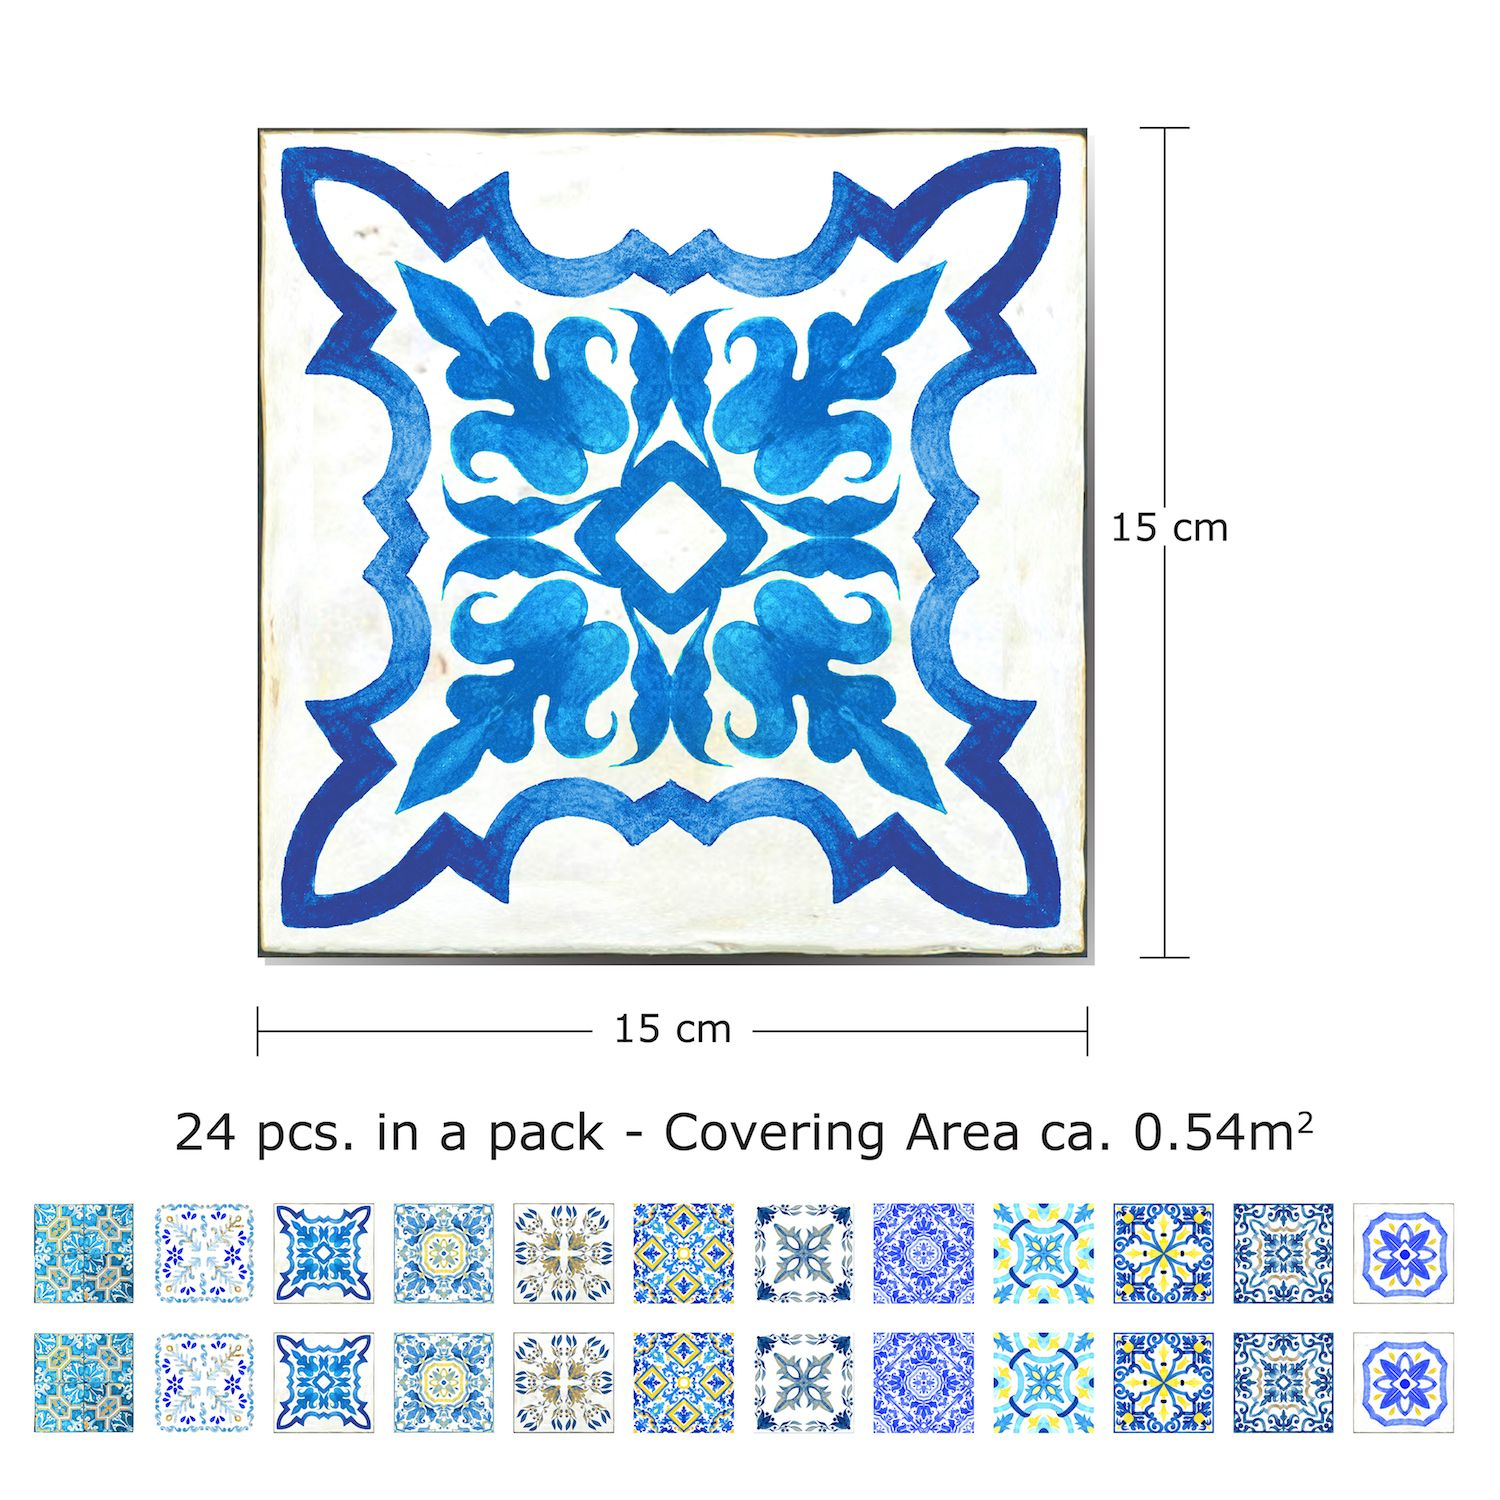 Walplus Tile Sticker Sky Classic Blue Mosaic Wall Sticker Decal (Size: 15cm x 15cm @ 24pcs)